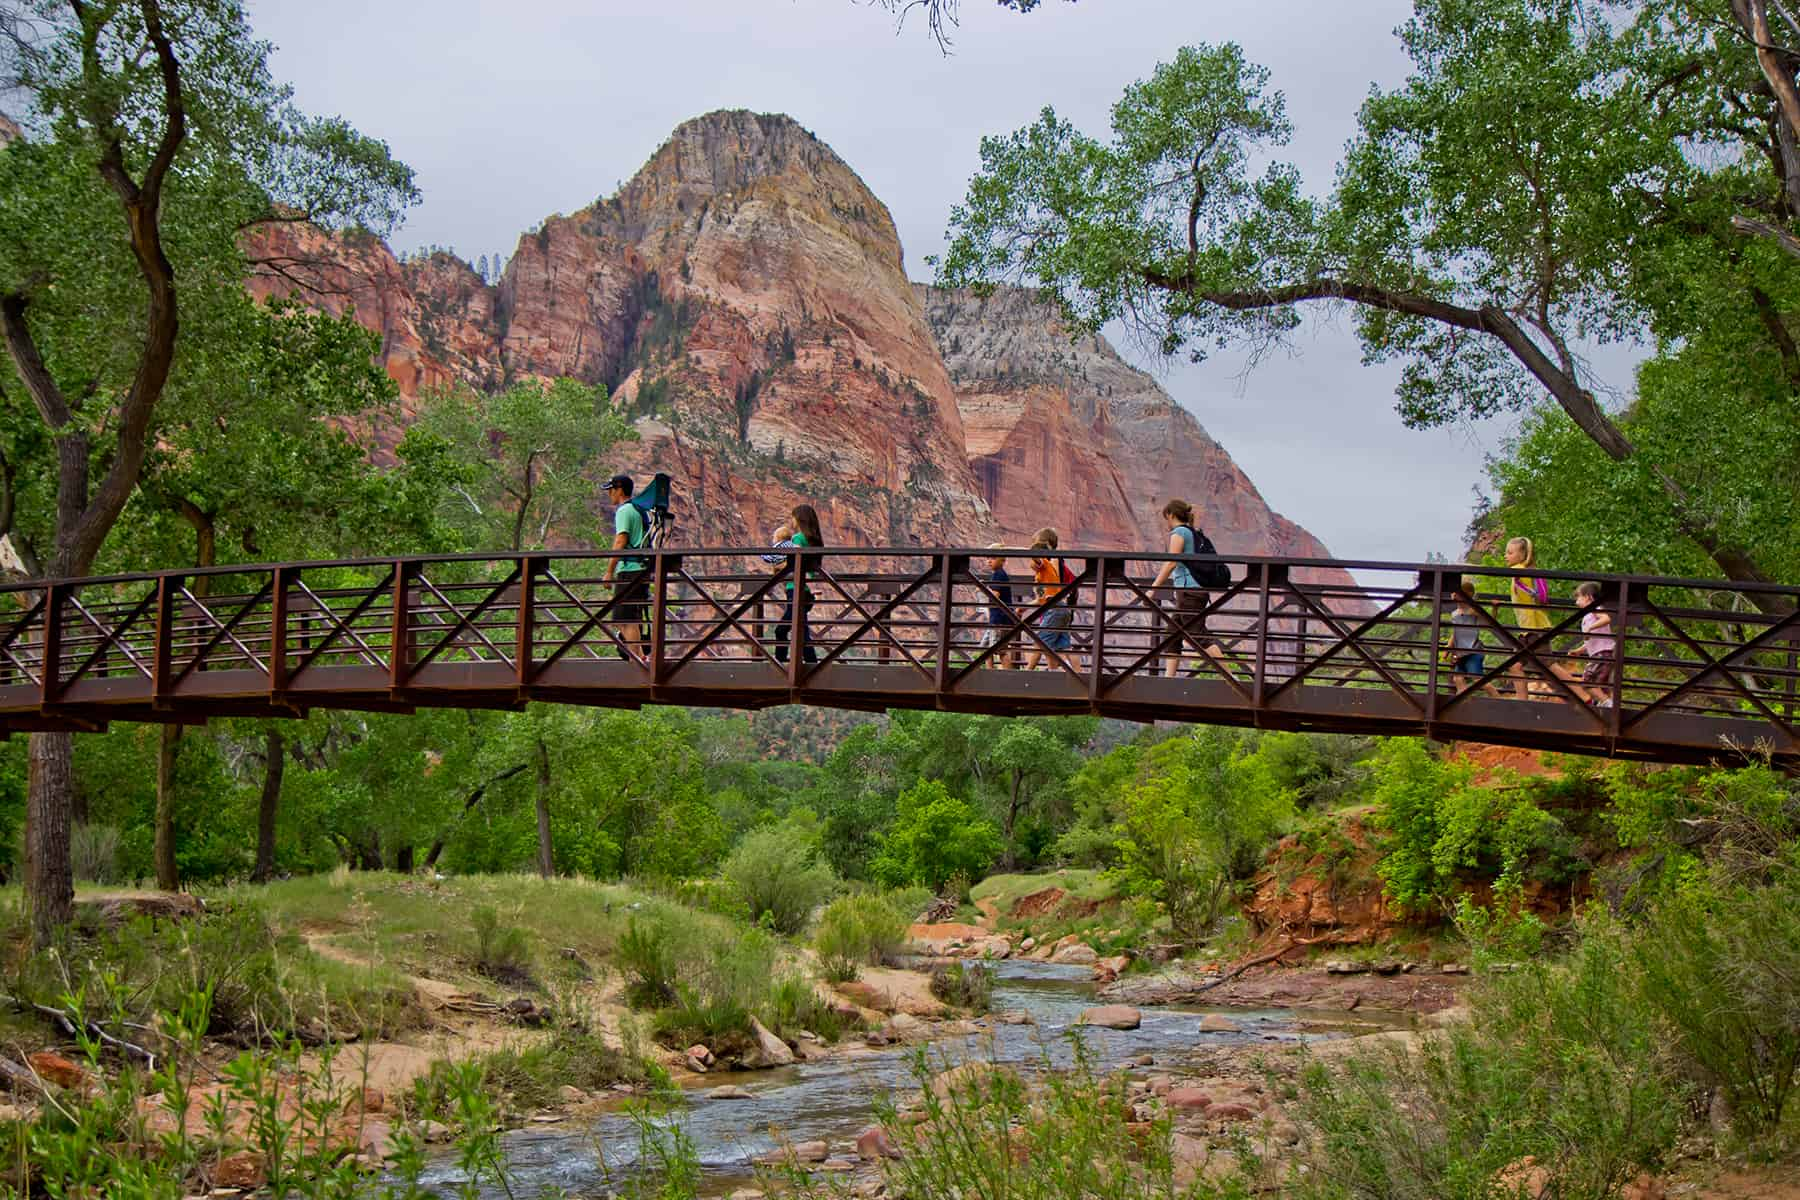 Zion Bridge over the Virgin River in Zion National Park